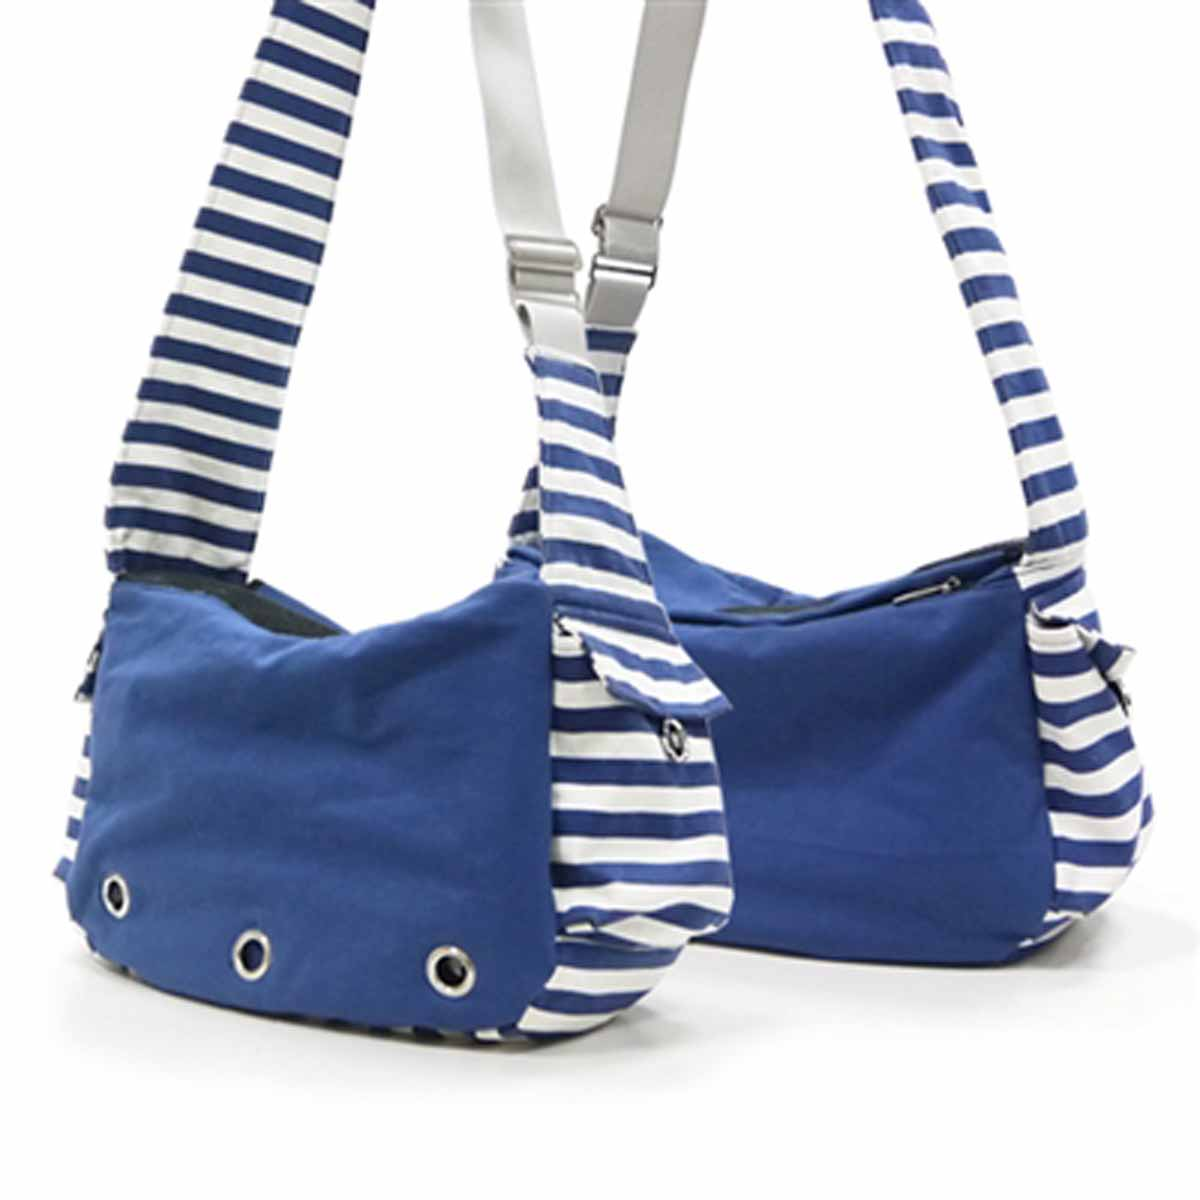 Soft Sling Bag Dog Carrier by Dogo - Blue | BaxterBoo